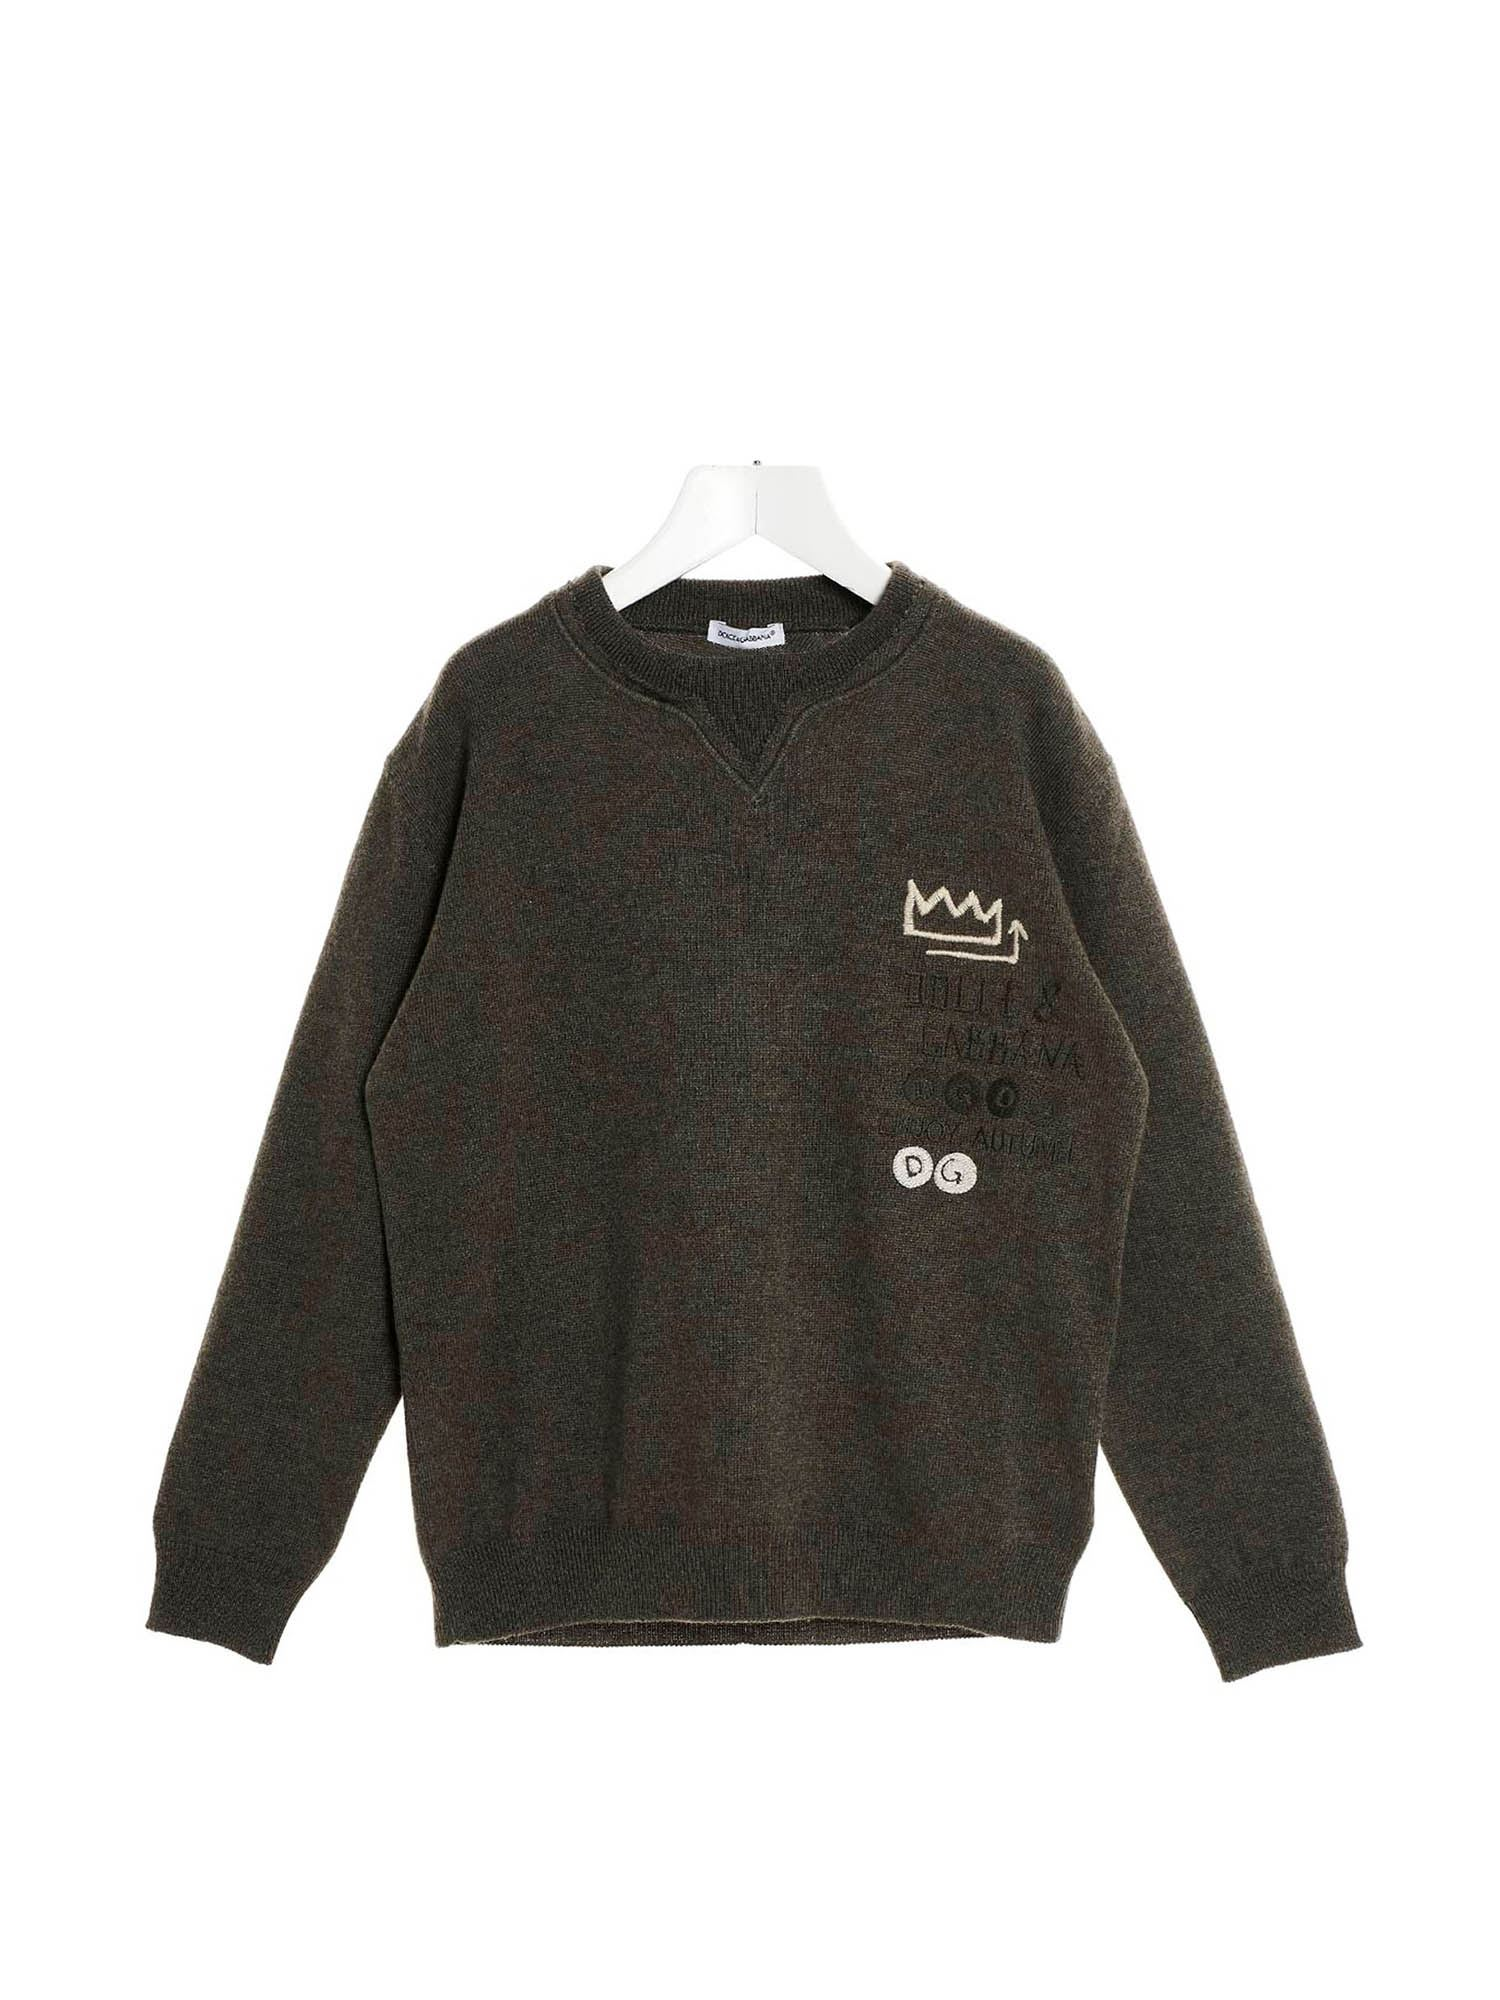 Dolce & Gabbana Jr EMBROIDERED LOGO PULLOVER IN GREY